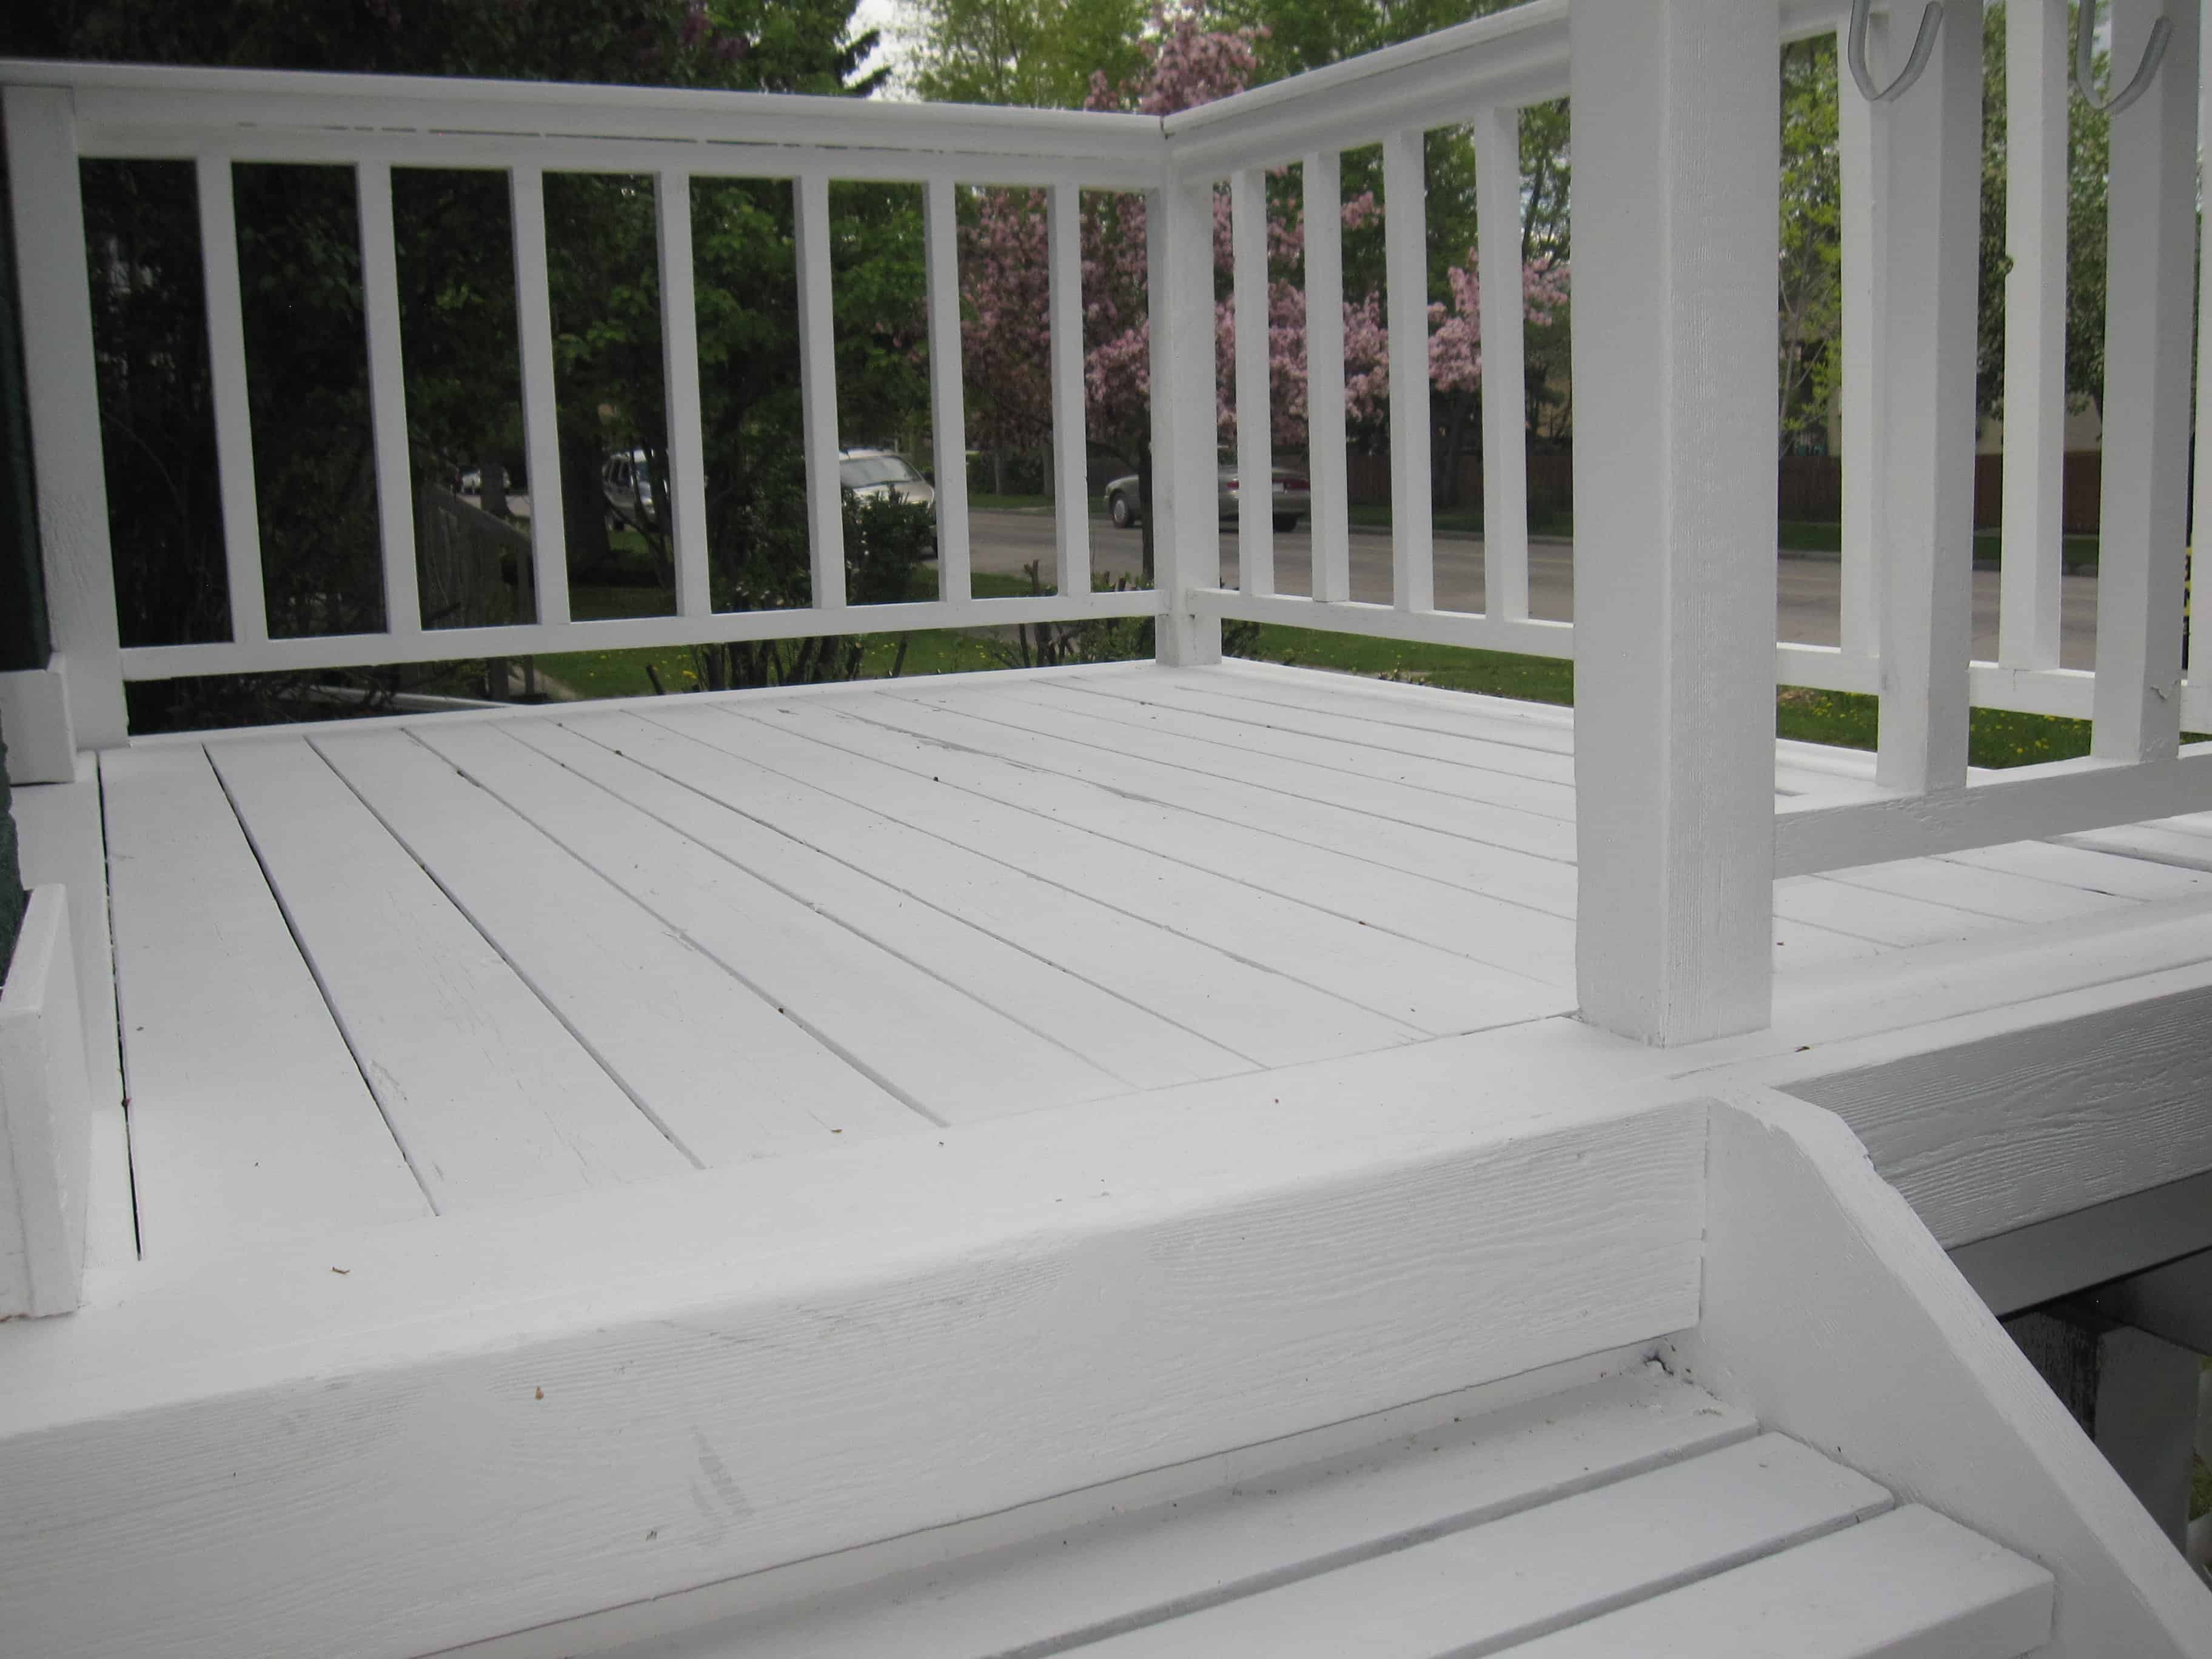 Picture showing the brilliant white deck after applying Flood stain